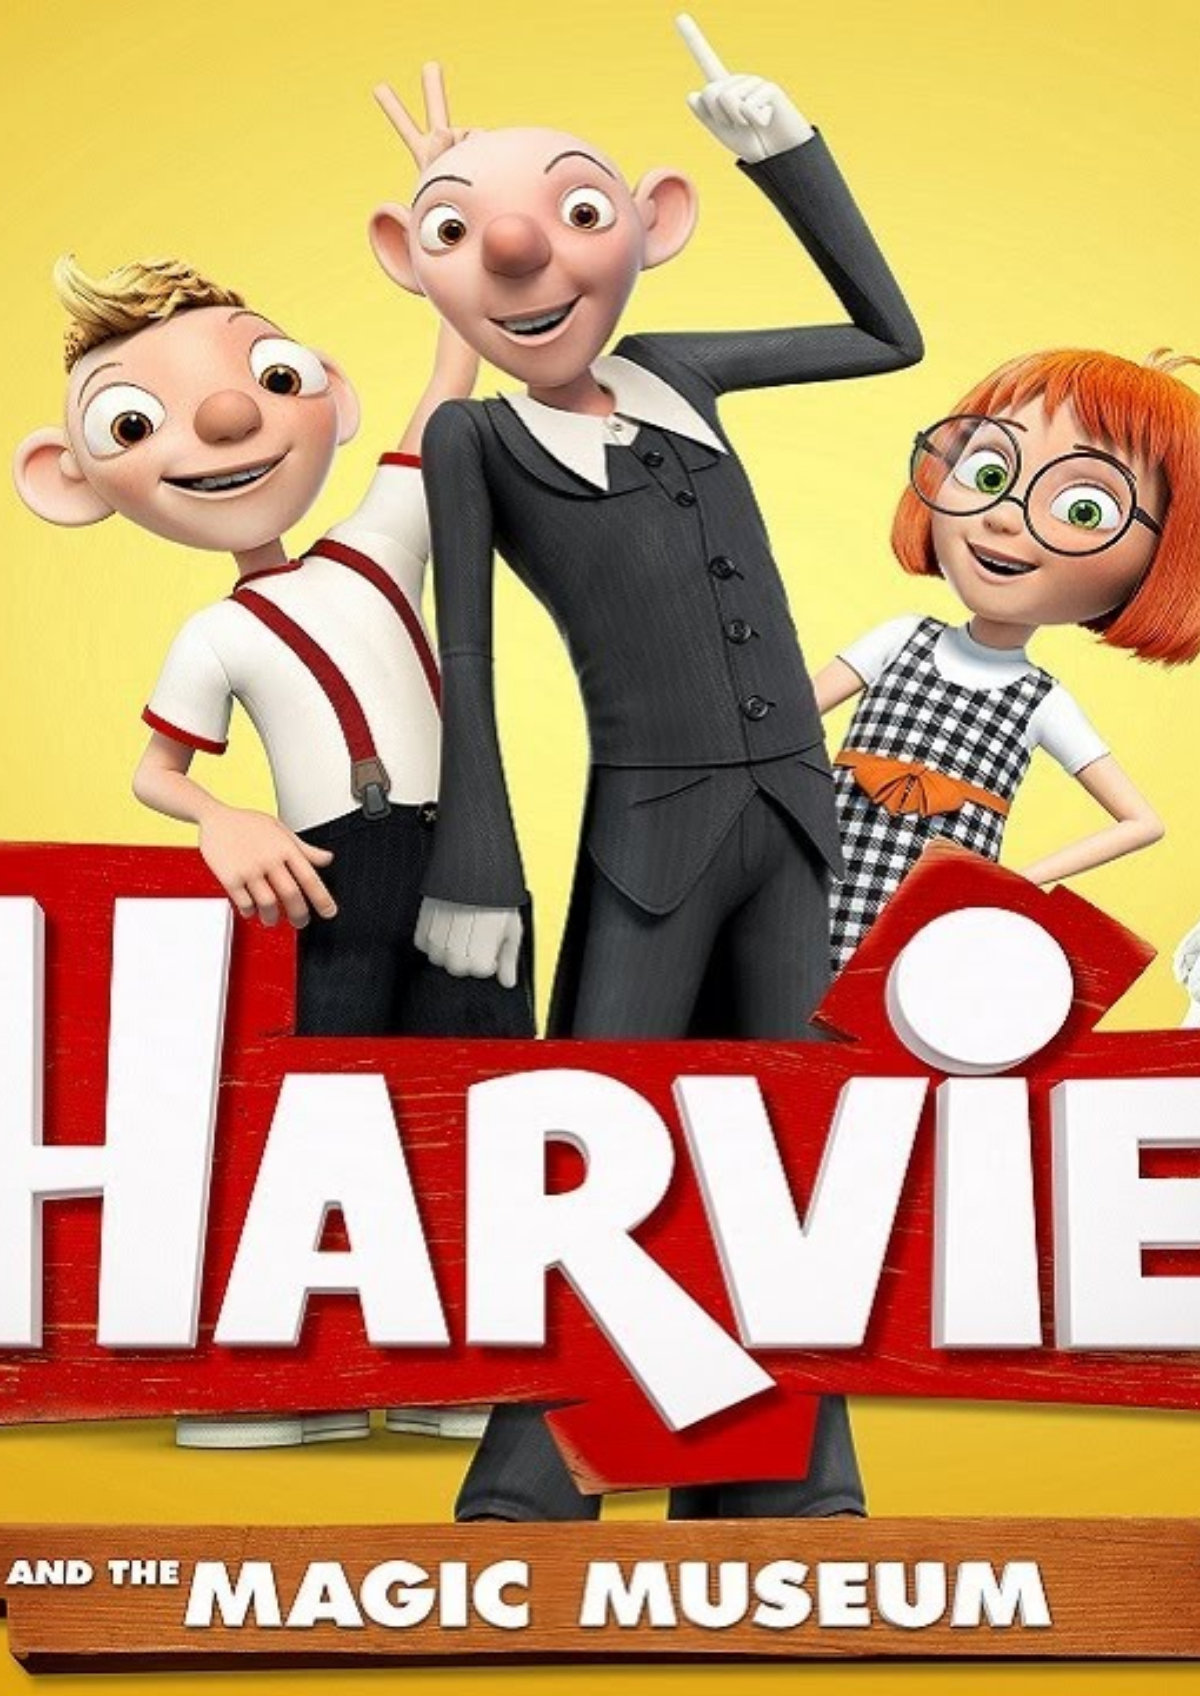 'Harvie and the Magic Museum' movie poster